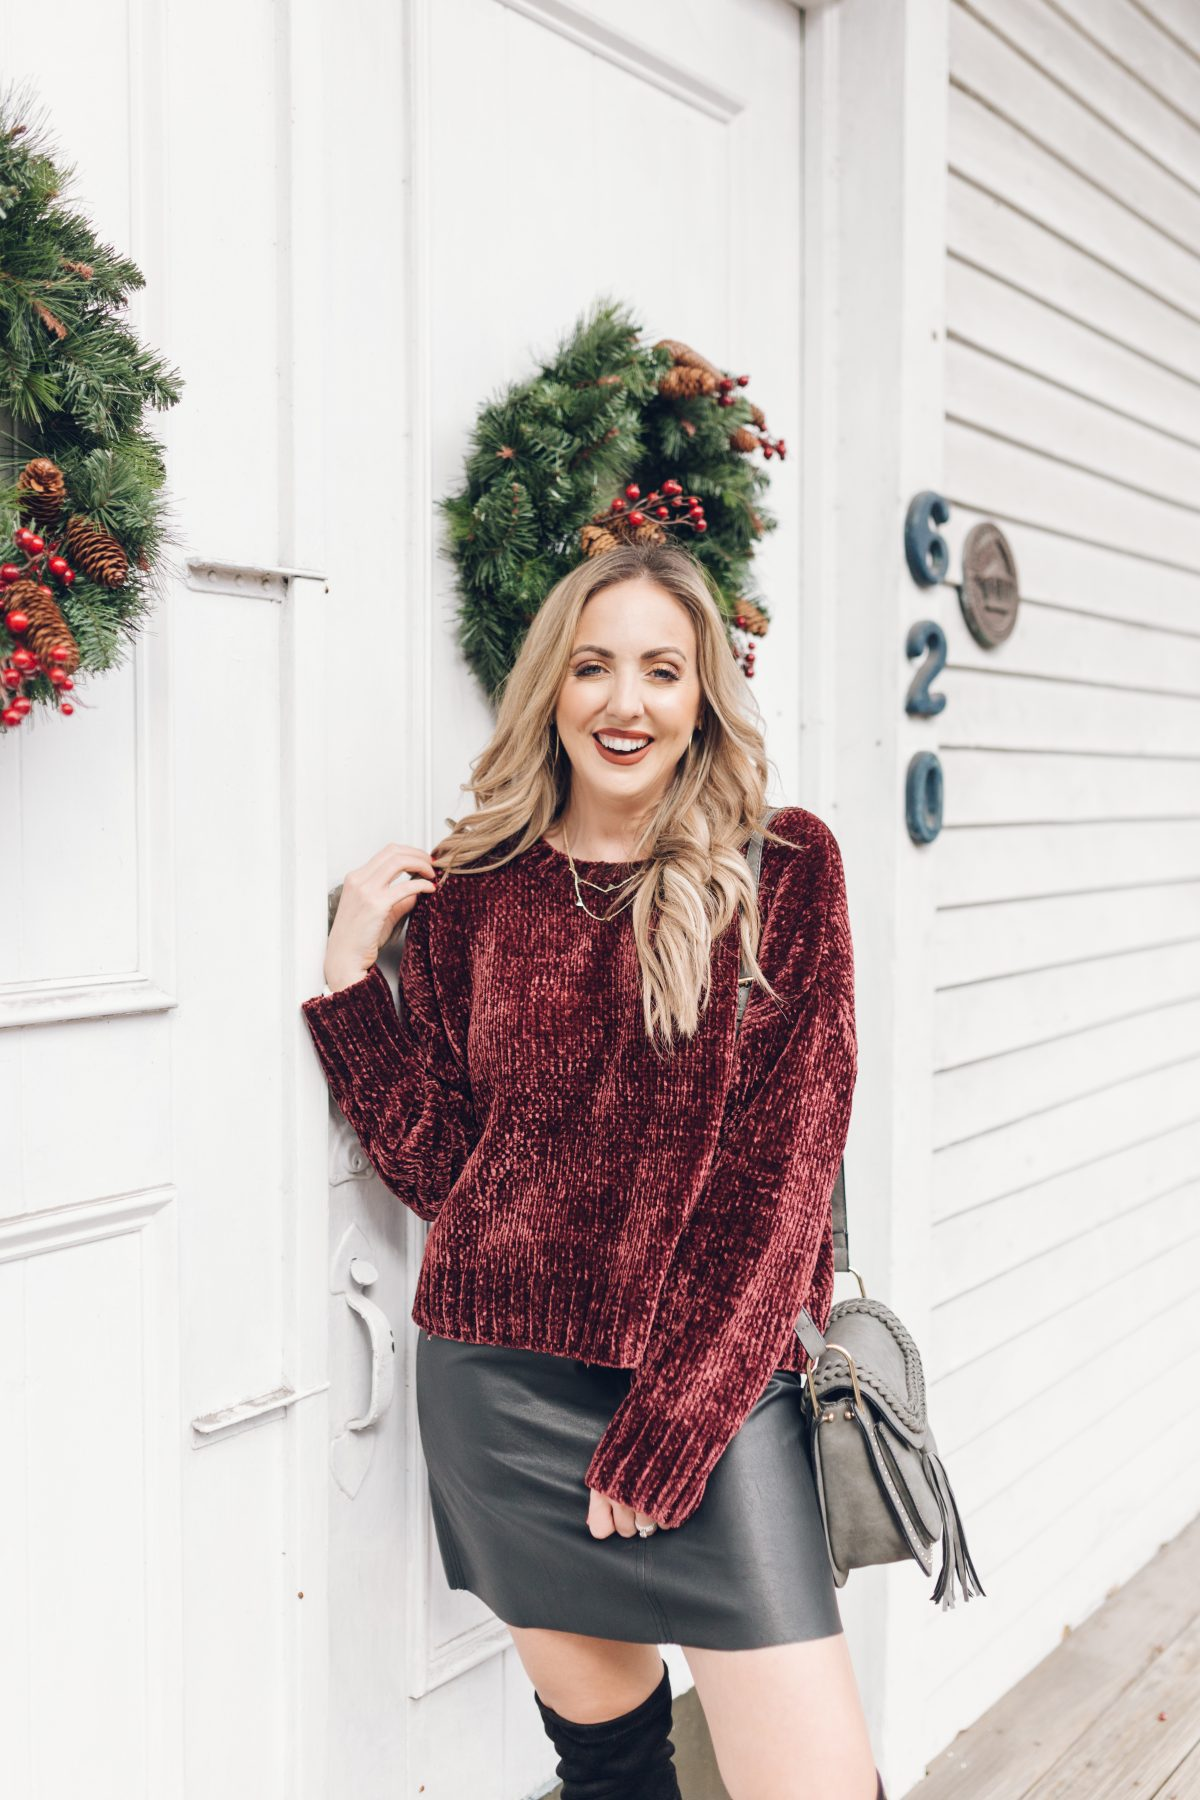 Houston lifestyle blogger Meg O. on the Go shares two holiday outfits from Evereve